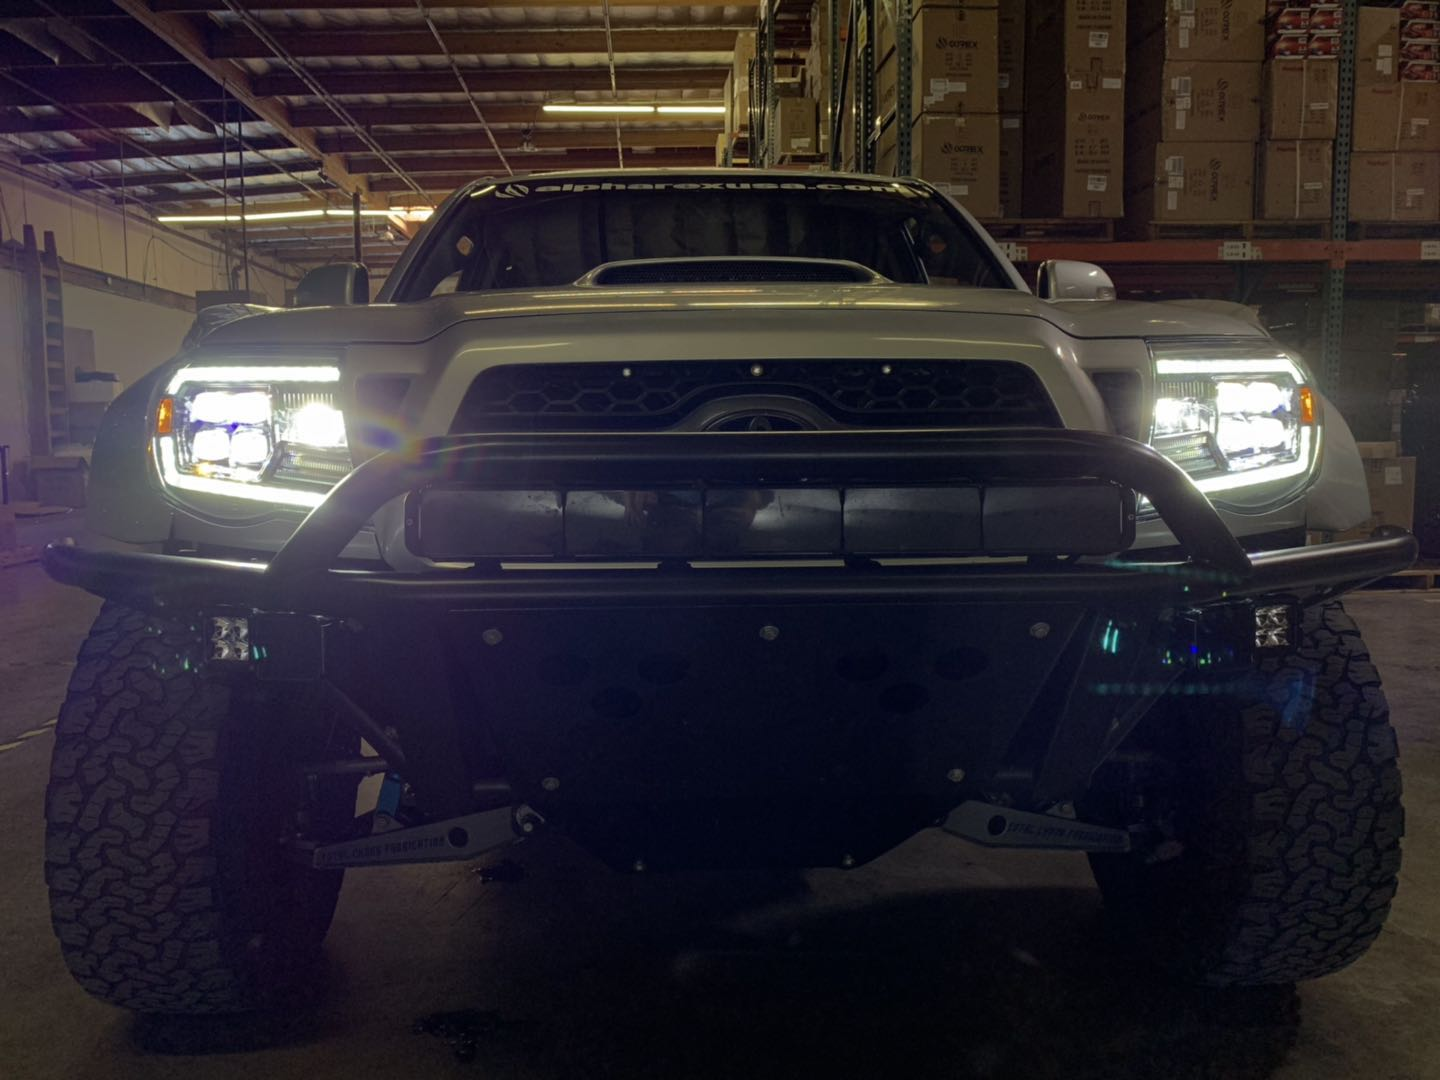 2005 2006 2007 2008 2009 2010 2011 Toyota Tacoma NOVA-Series LED Projector Headlights